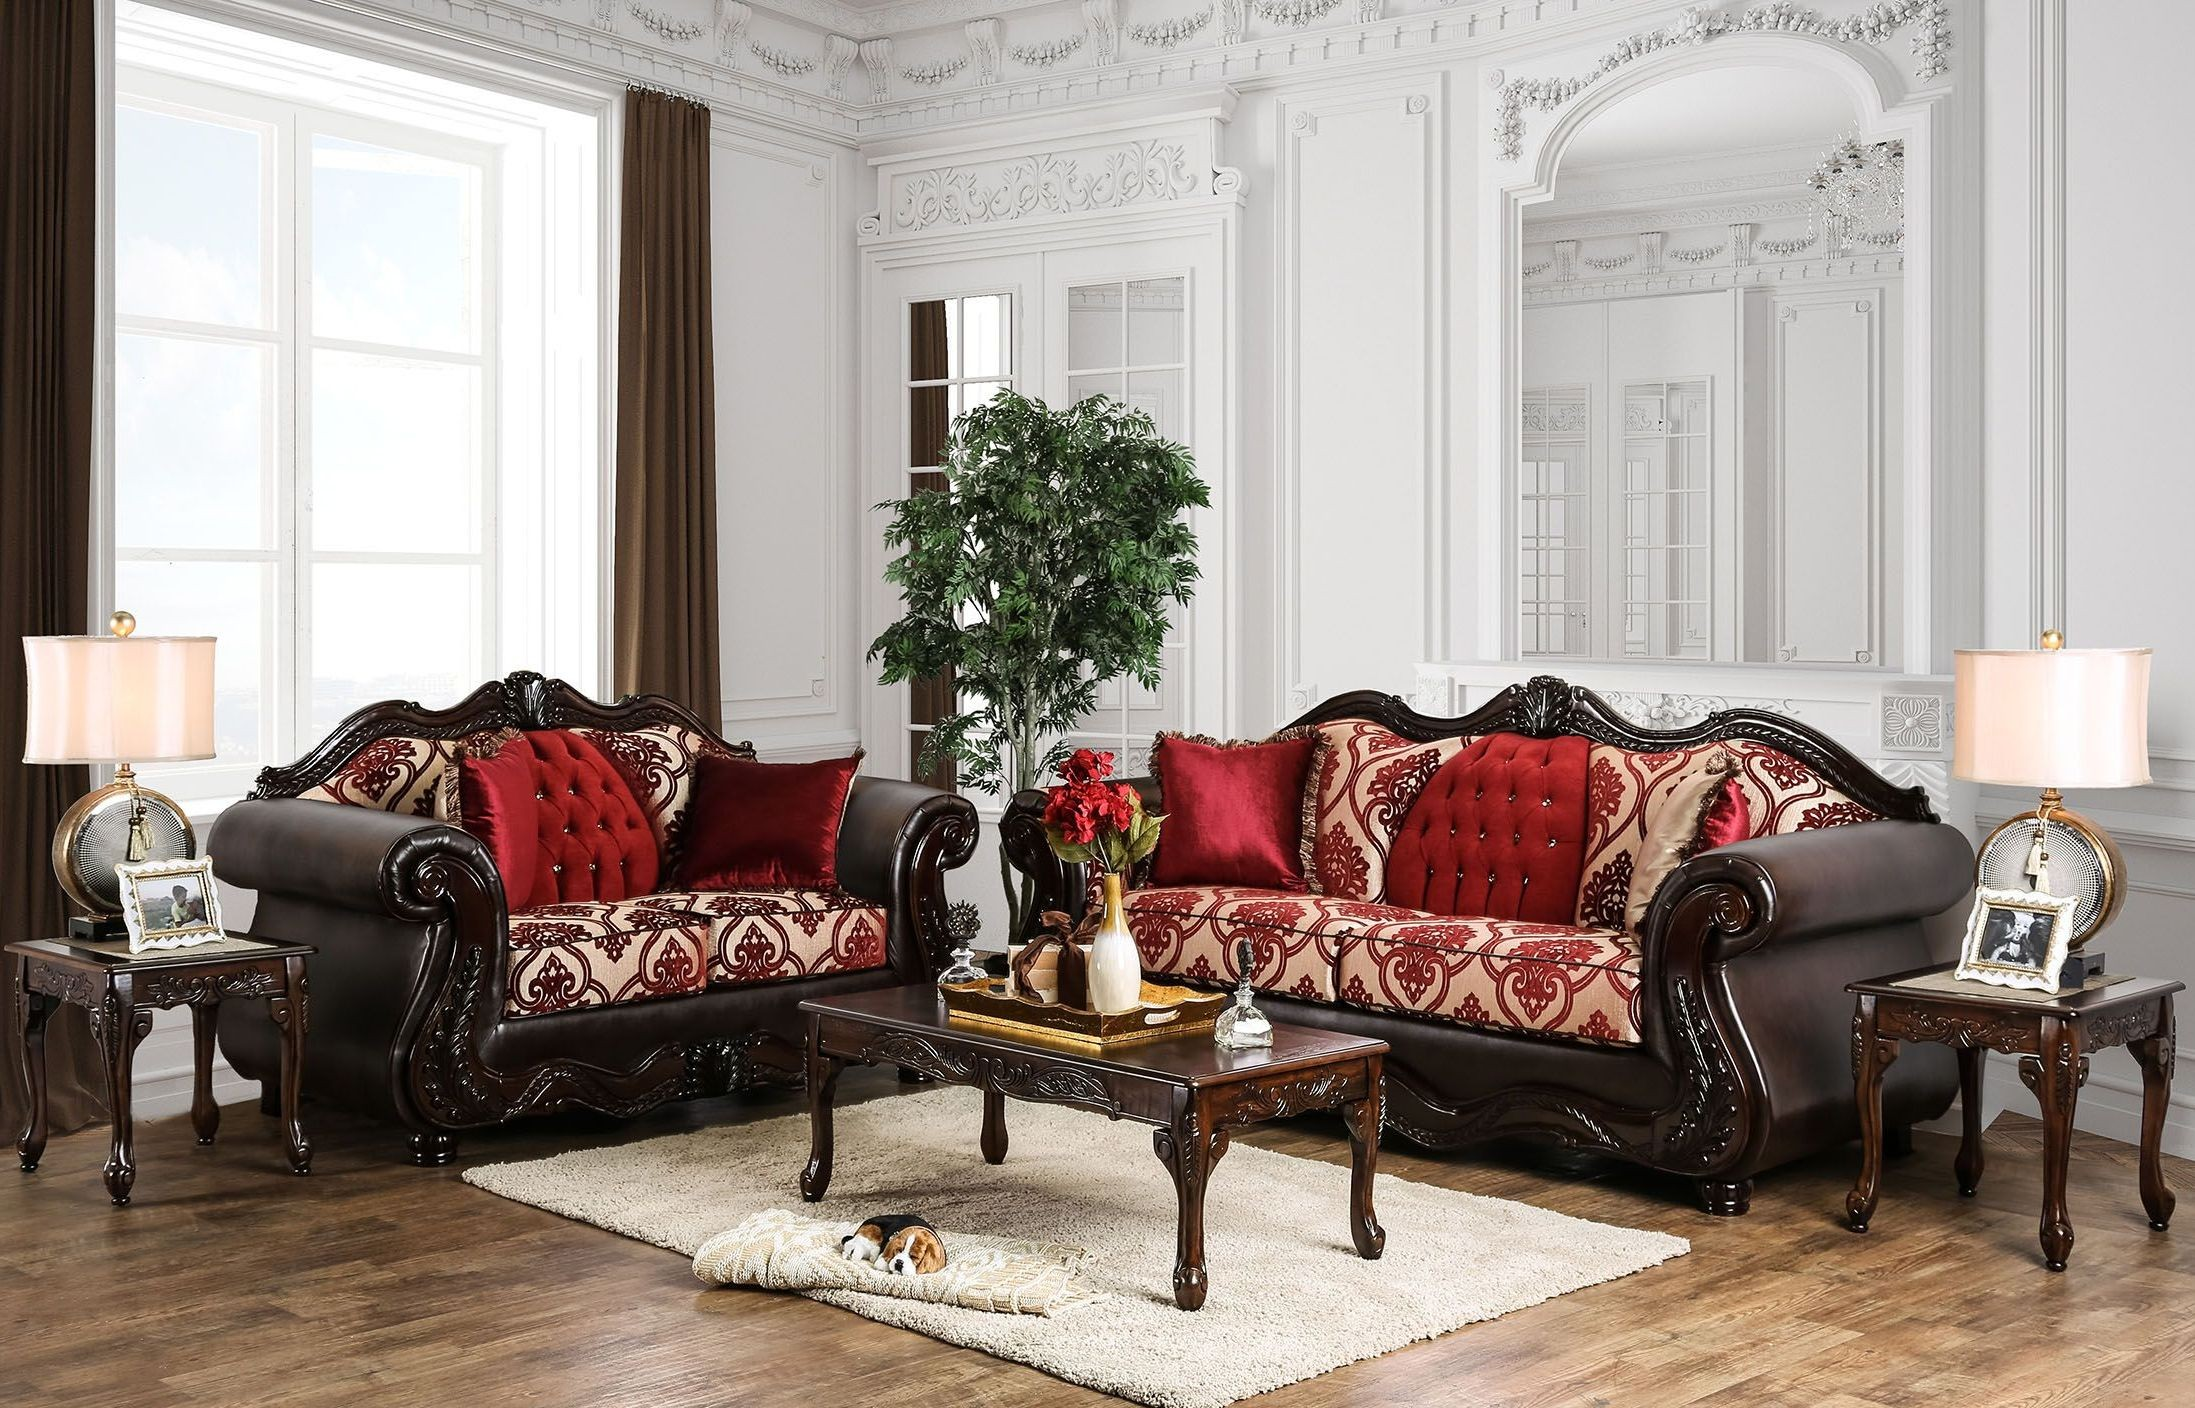 wilford burgundy upholstered living room set from 82781